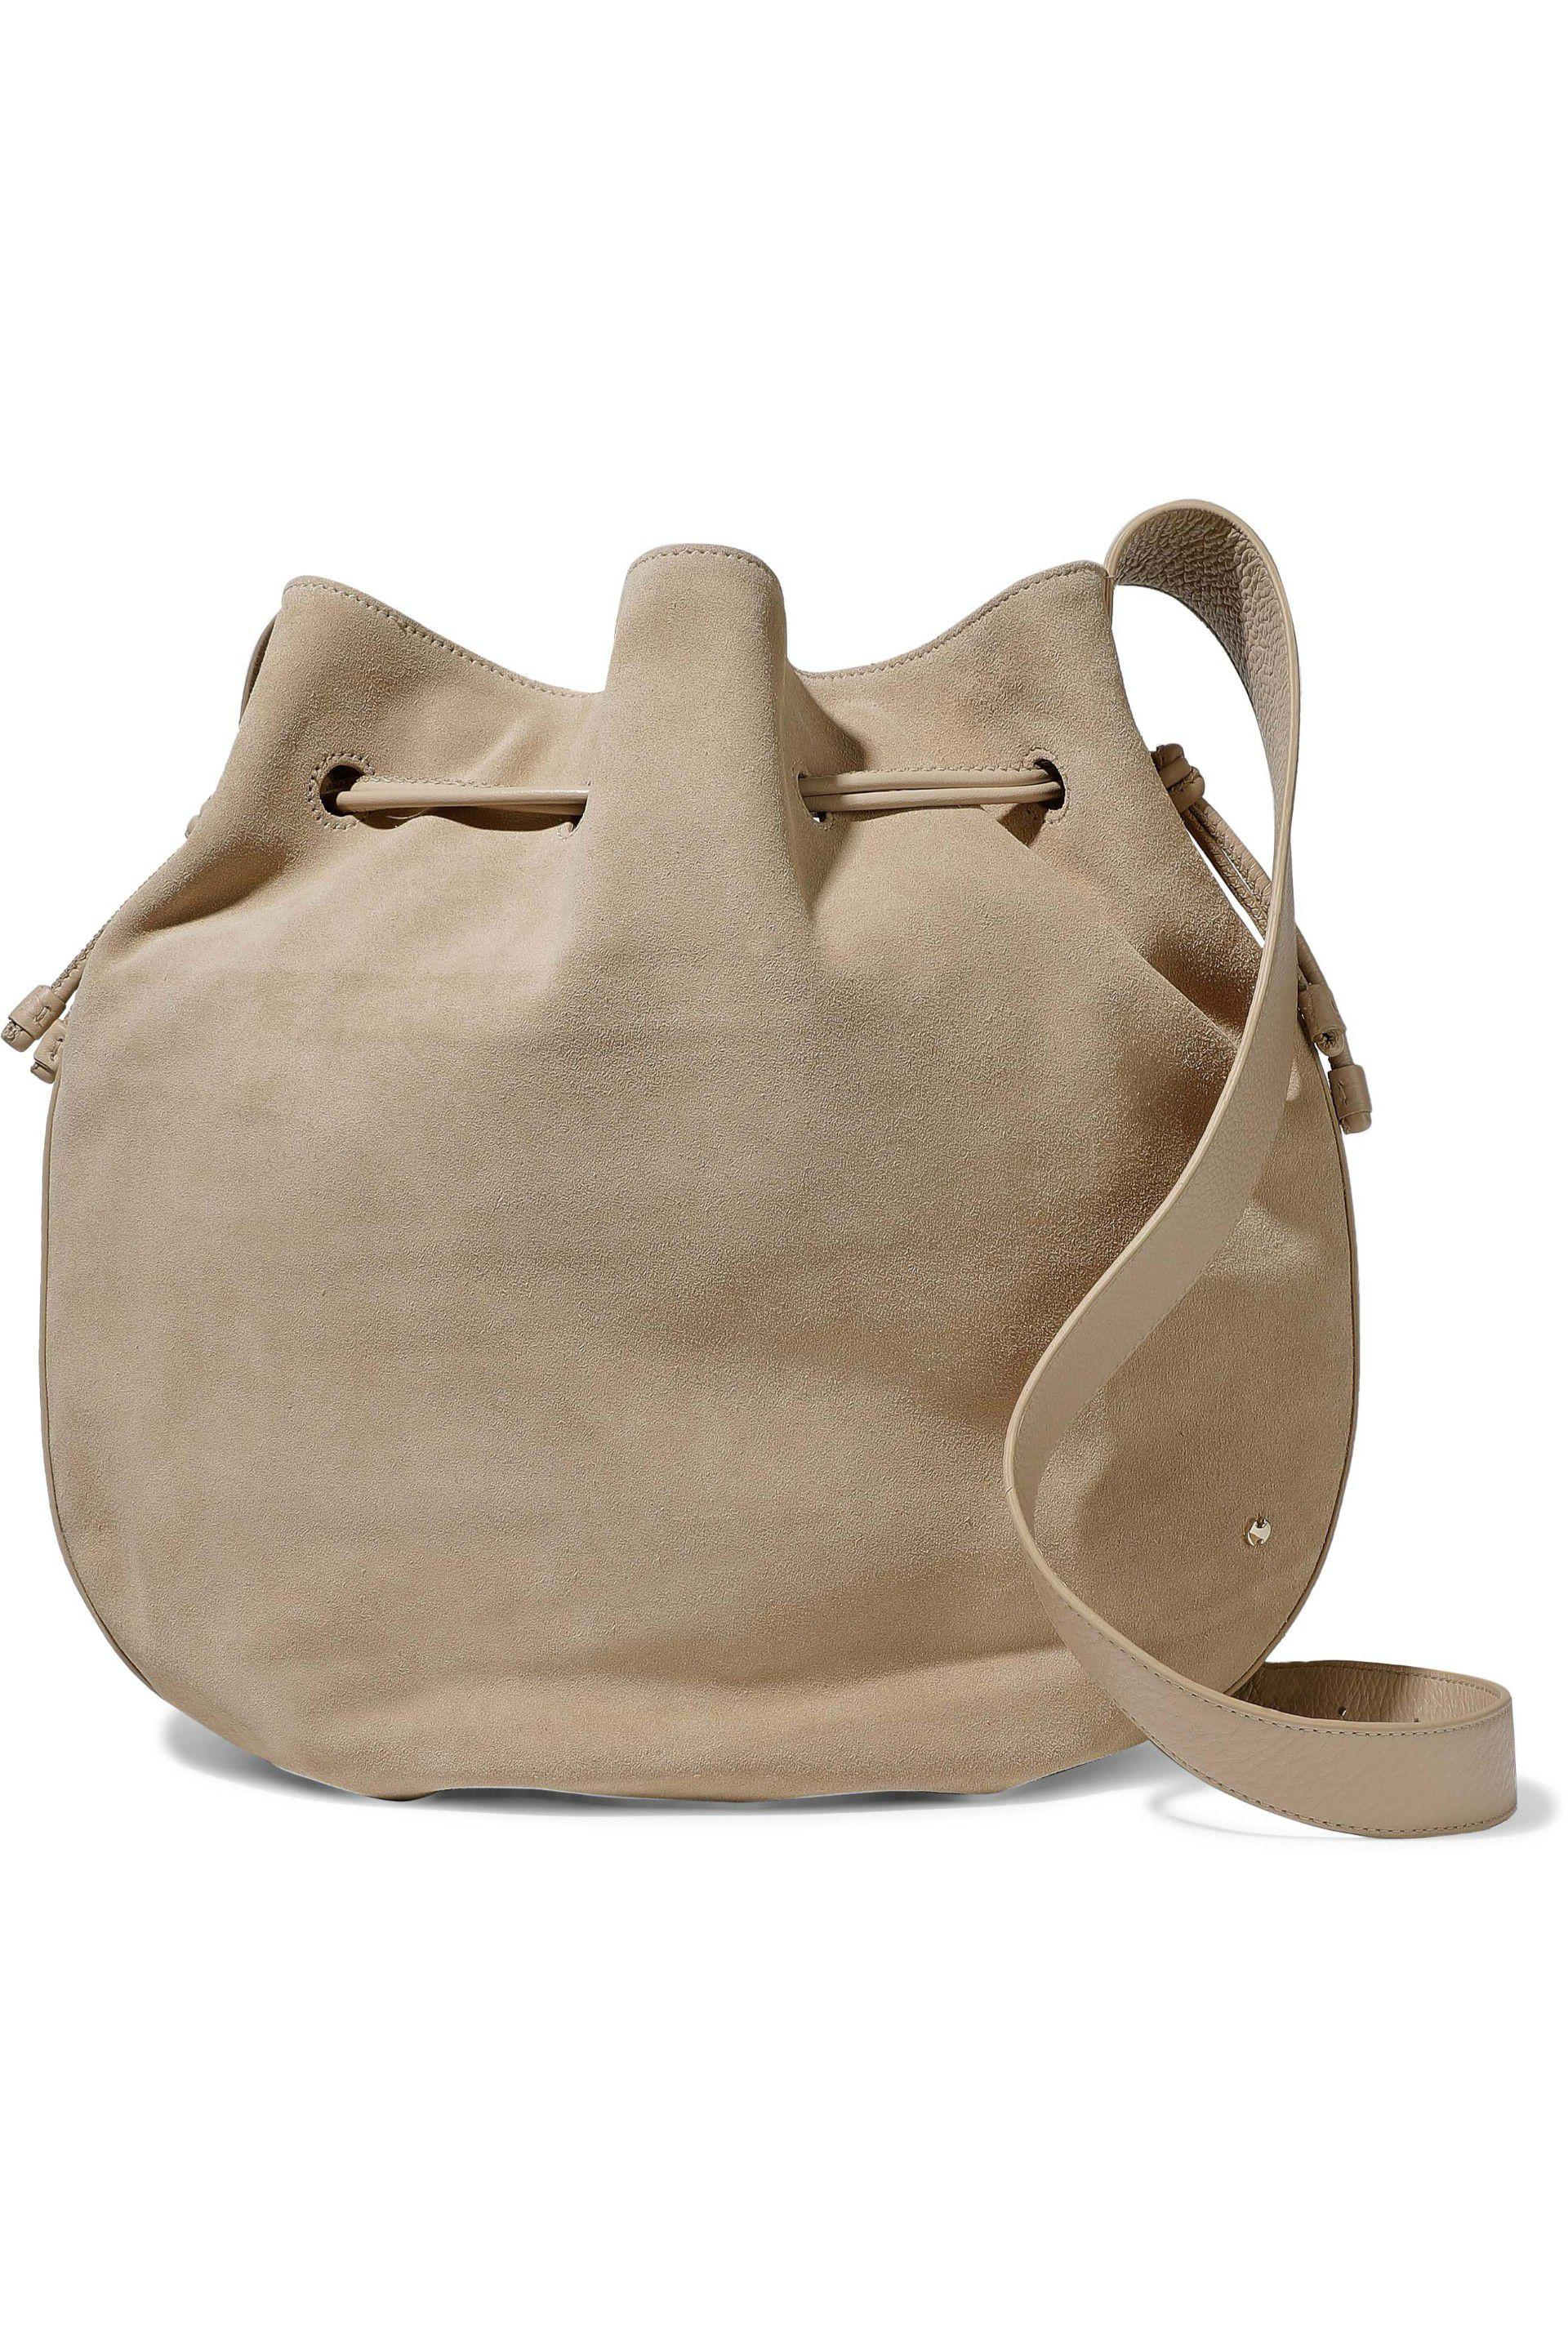 f6da3ffee8ec Halston Leather-trimmed Suede Bucket Bag in Natural - Lyst